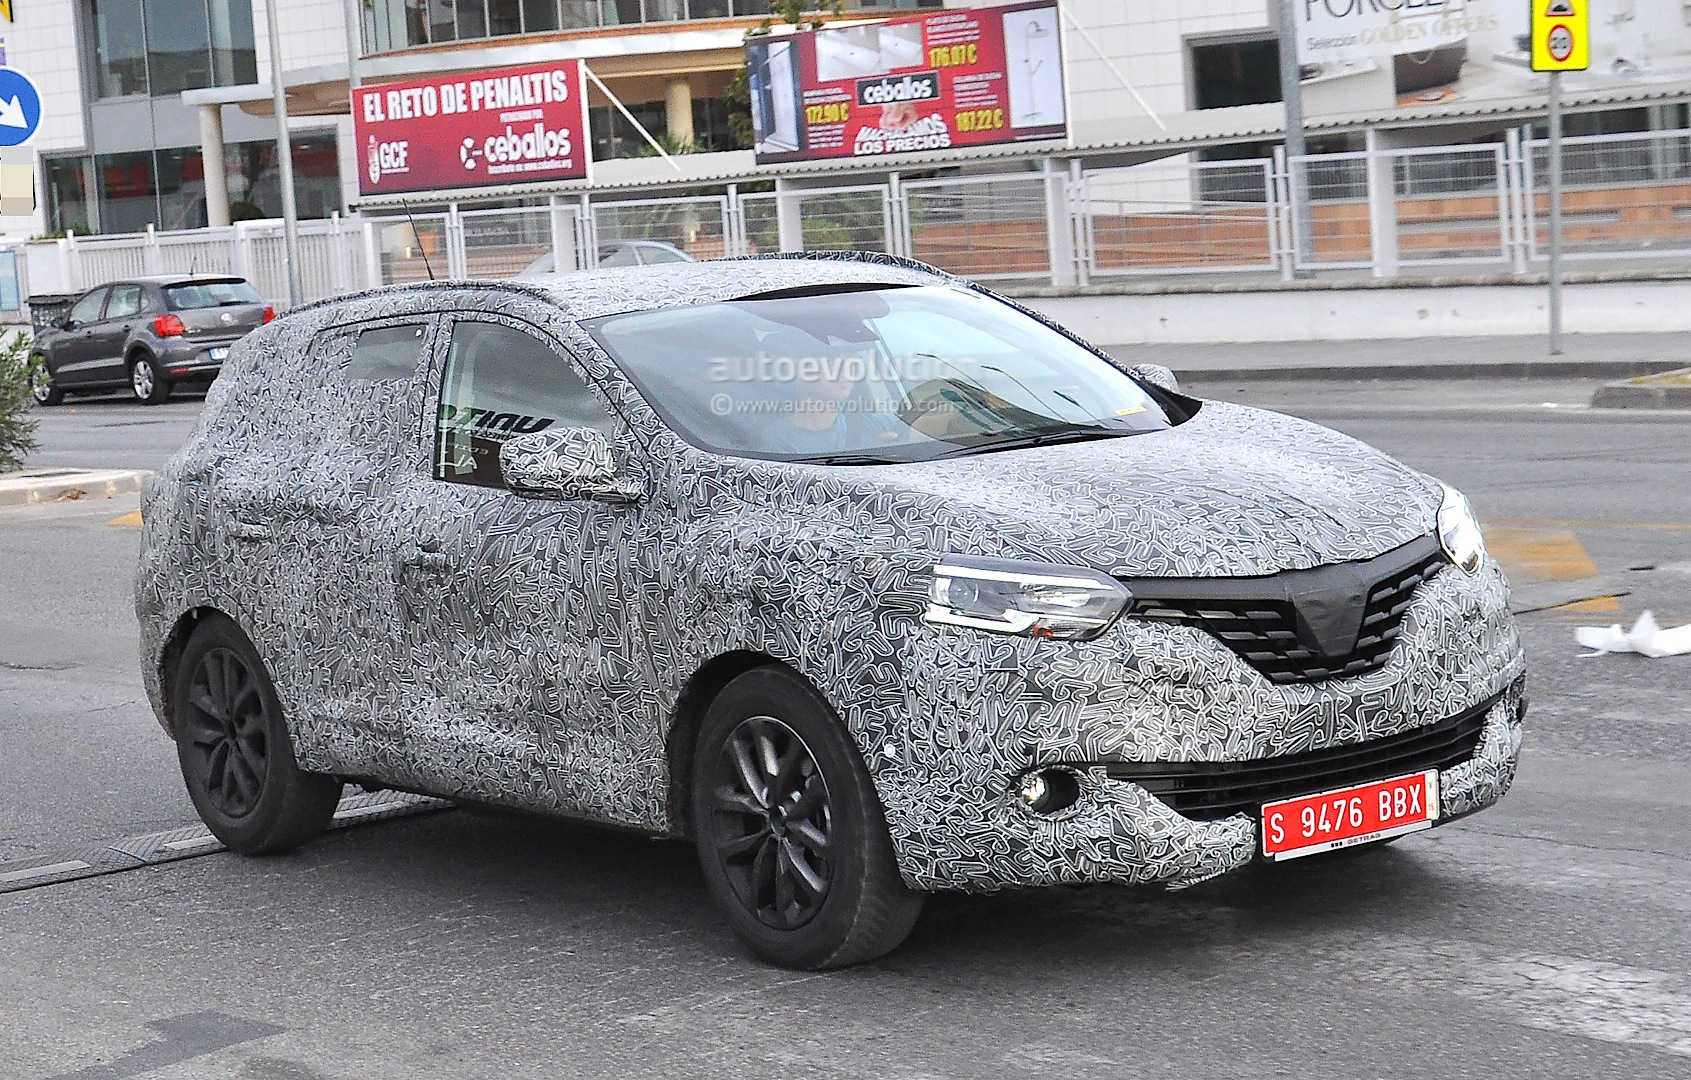 All new 2016 renault koleos spied with production body for the first time autoevolution